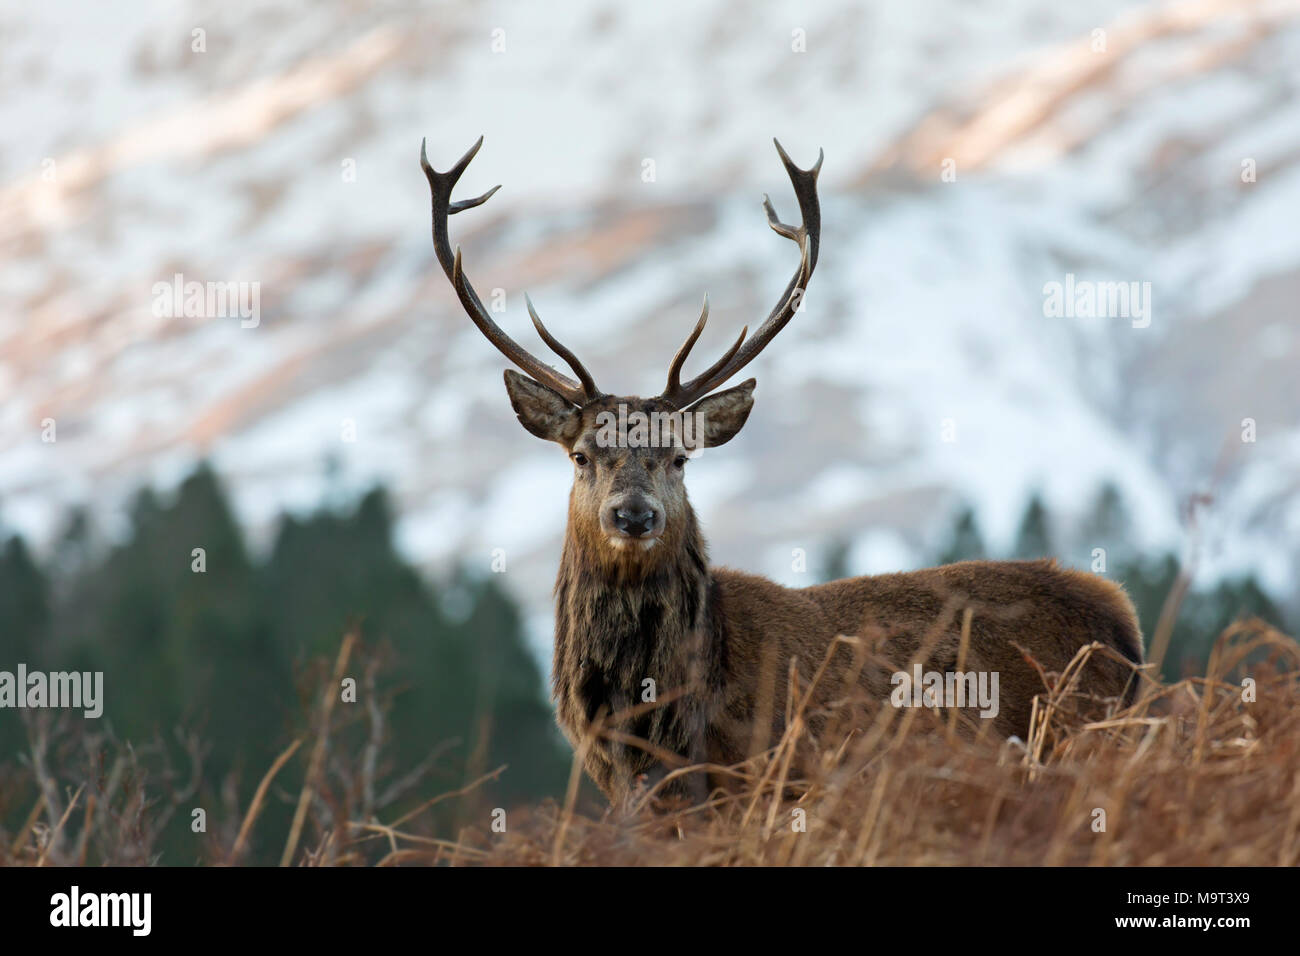 Red deer stag / male (Cervus elaphus) on moorland in the hills in winter in the Scottish Highlands, Scotland, UK - Stock Image